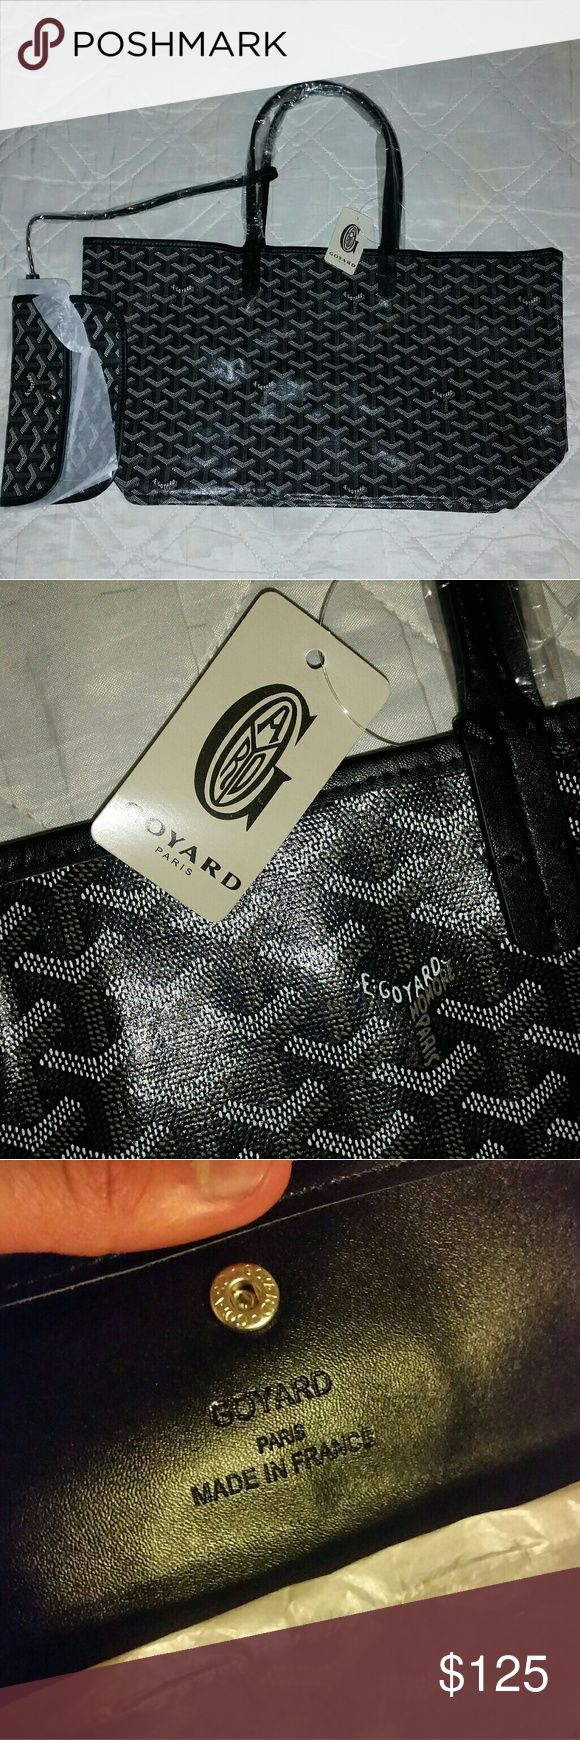 Tote bag and wallet Looks amazing. Plz do not be silly with the questions. Price says it all. Bag come with original packaging, dustbag, and tag. The logo and leather are on point. ~Measurements : 18 x 18 inches (the straps are 8 inches long while bag itself is 10 inches long) Goyard Bags Totes